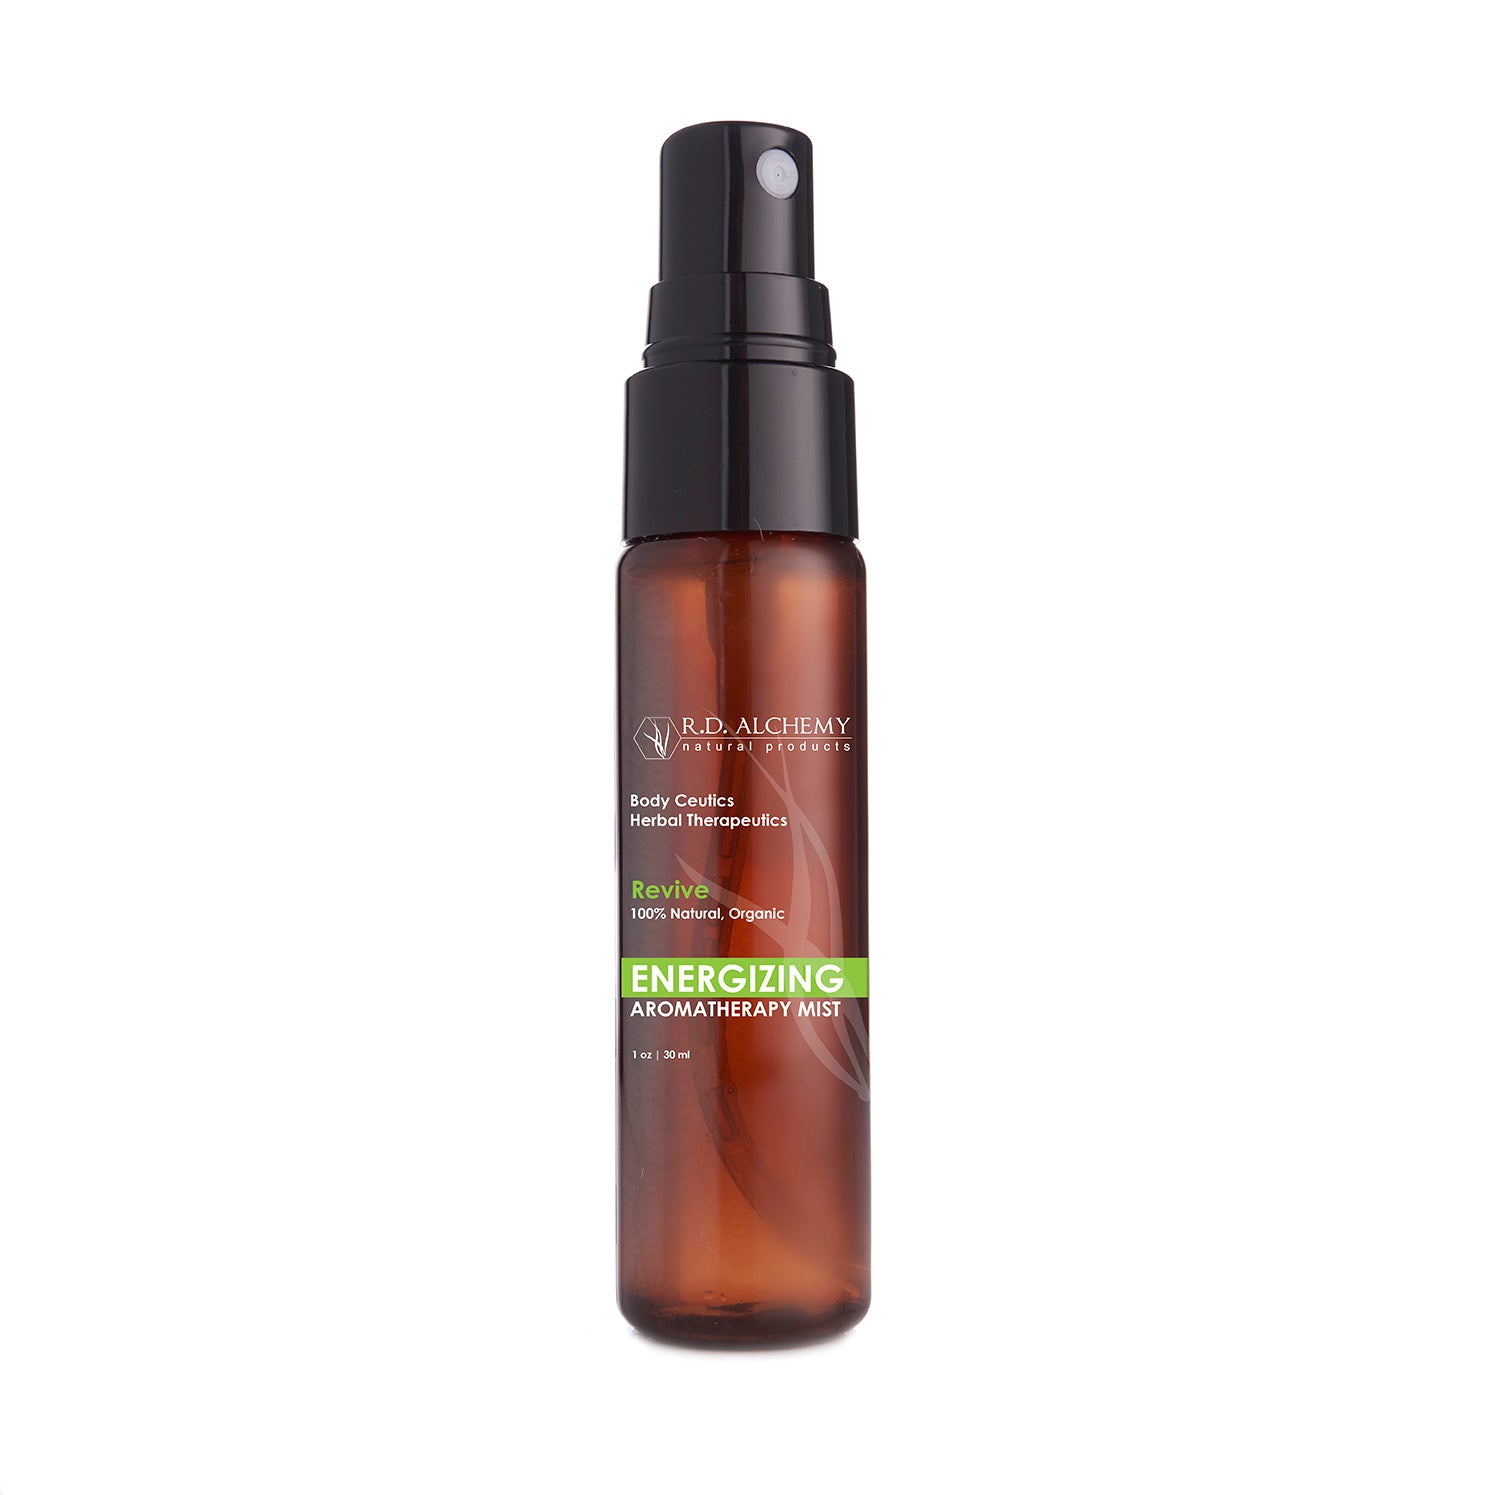 Energizing Body Mist